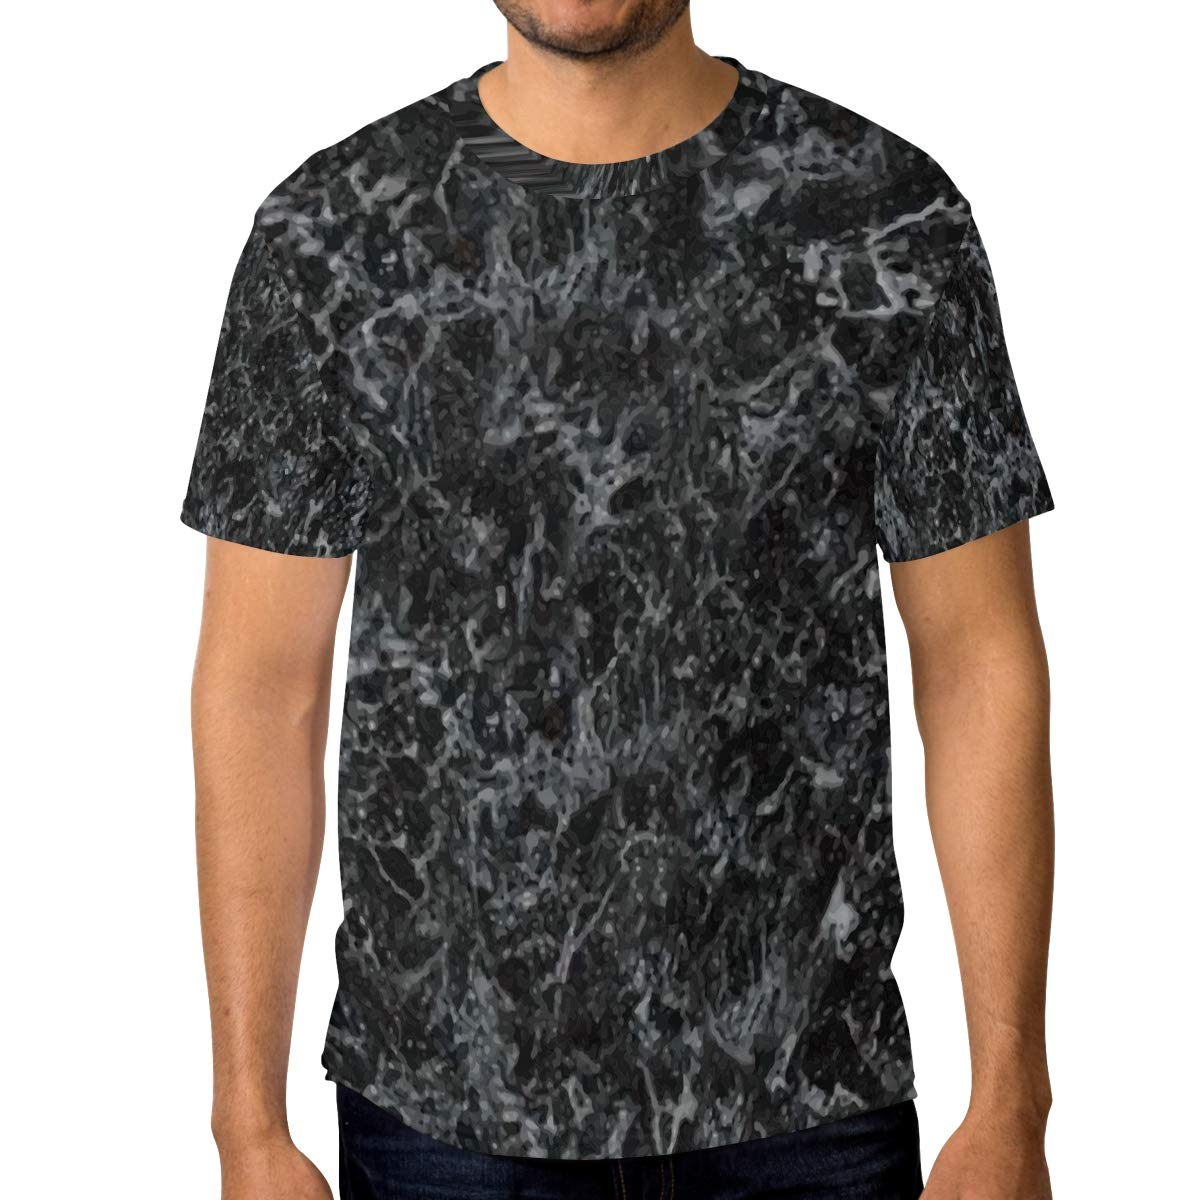 Horatiood Huberyyd Black Chaotic Marble Pattern Mens T Shirts Graphic Funny Body Print Short T-Shirt Unisex Pullover Blouse